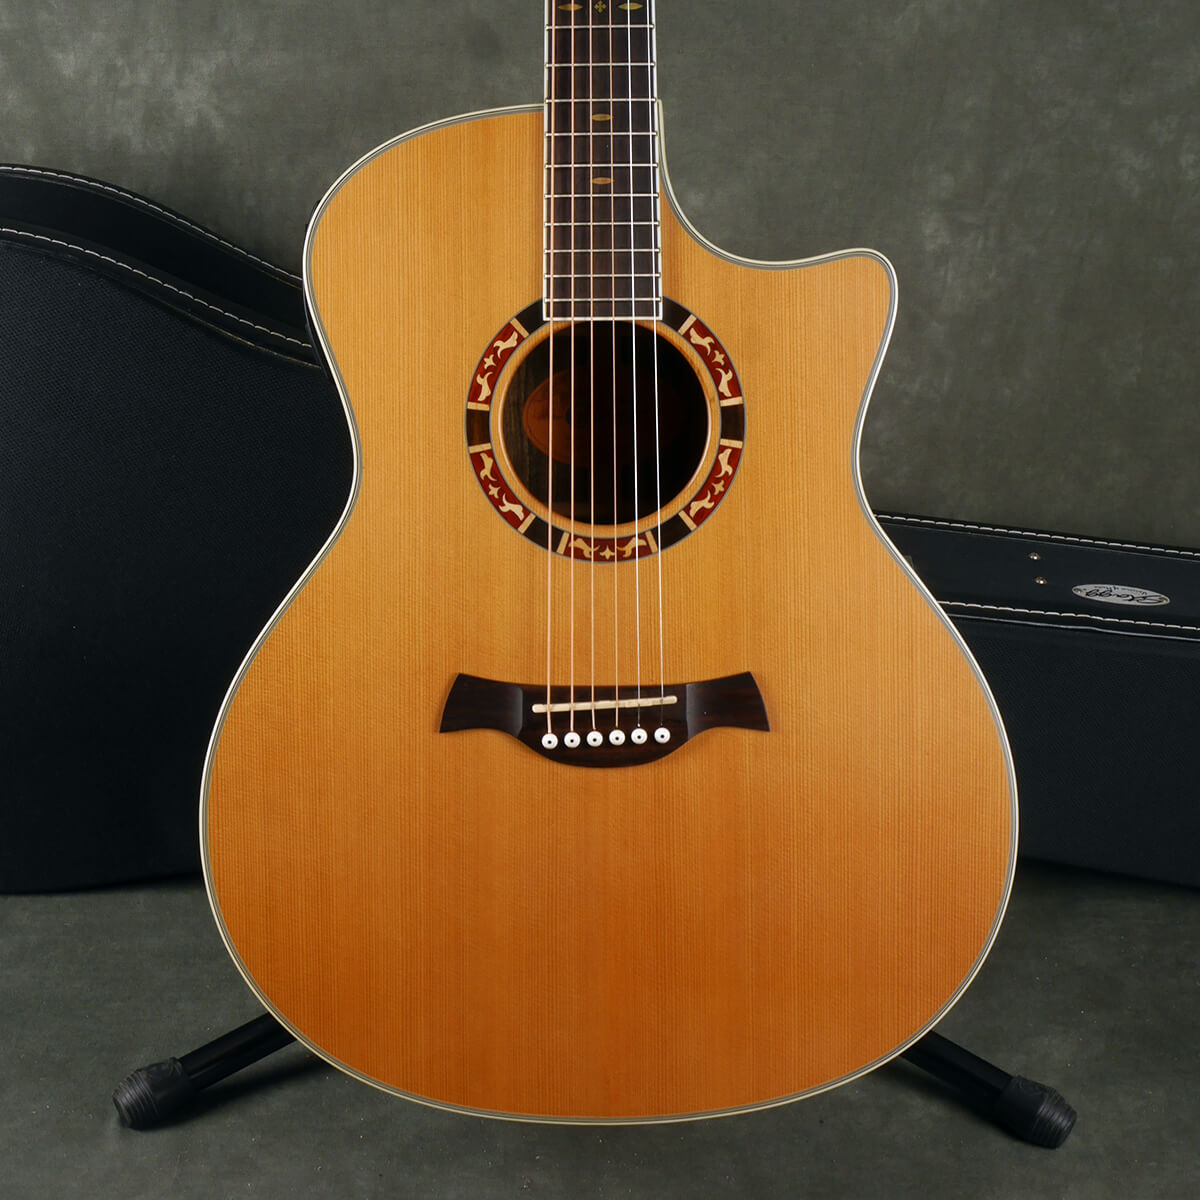 Crafter GAE15 Electro-Acoustic Guitar - Natural w/Hard Case - 2nd Hand